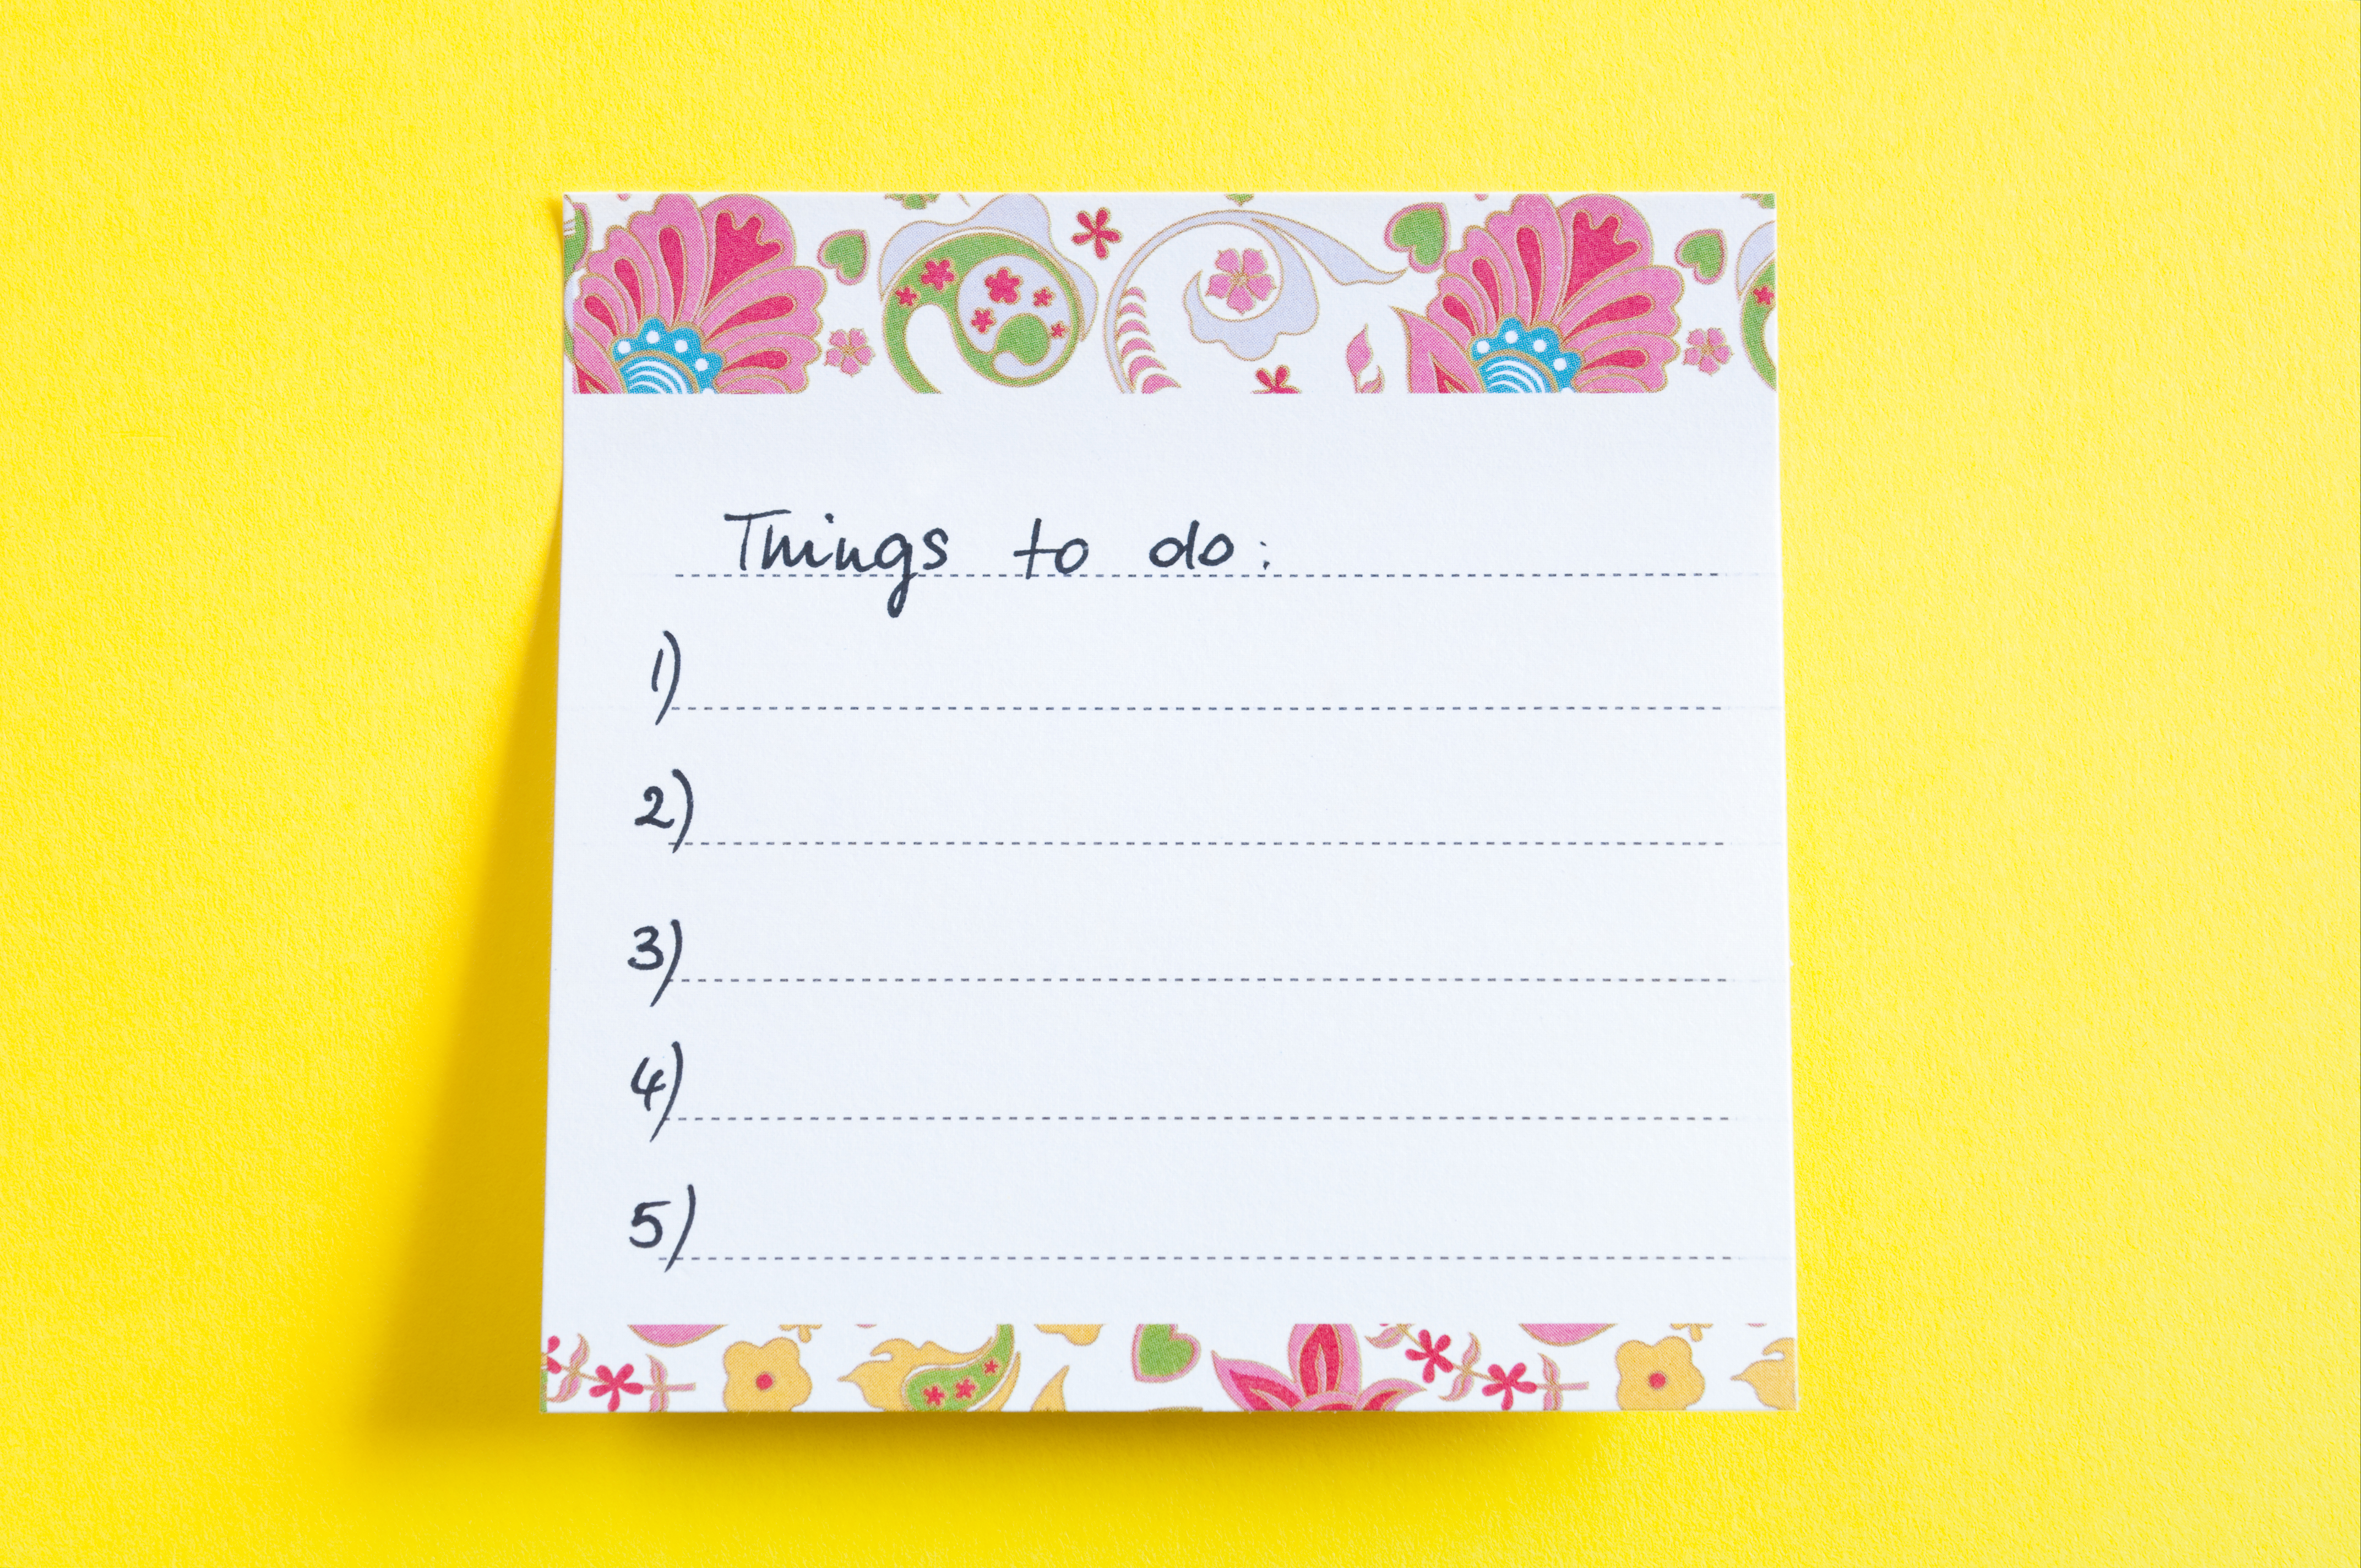 Things to do-Liste